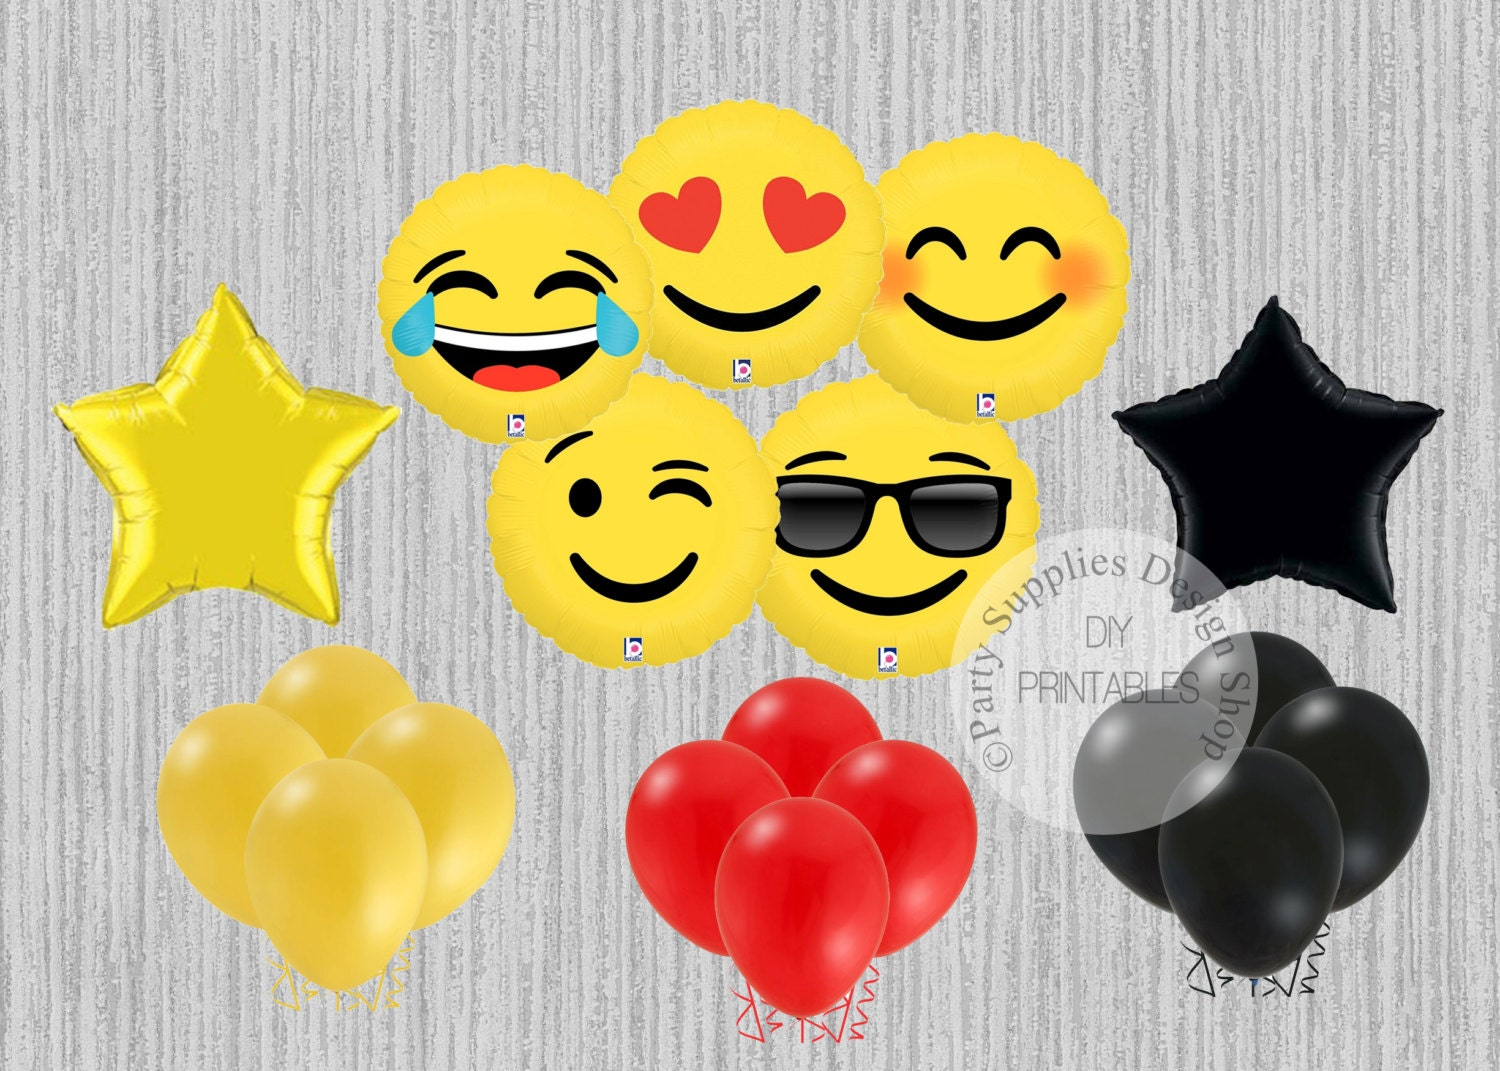 FAST SHIP Emoji Balloons LOL Love